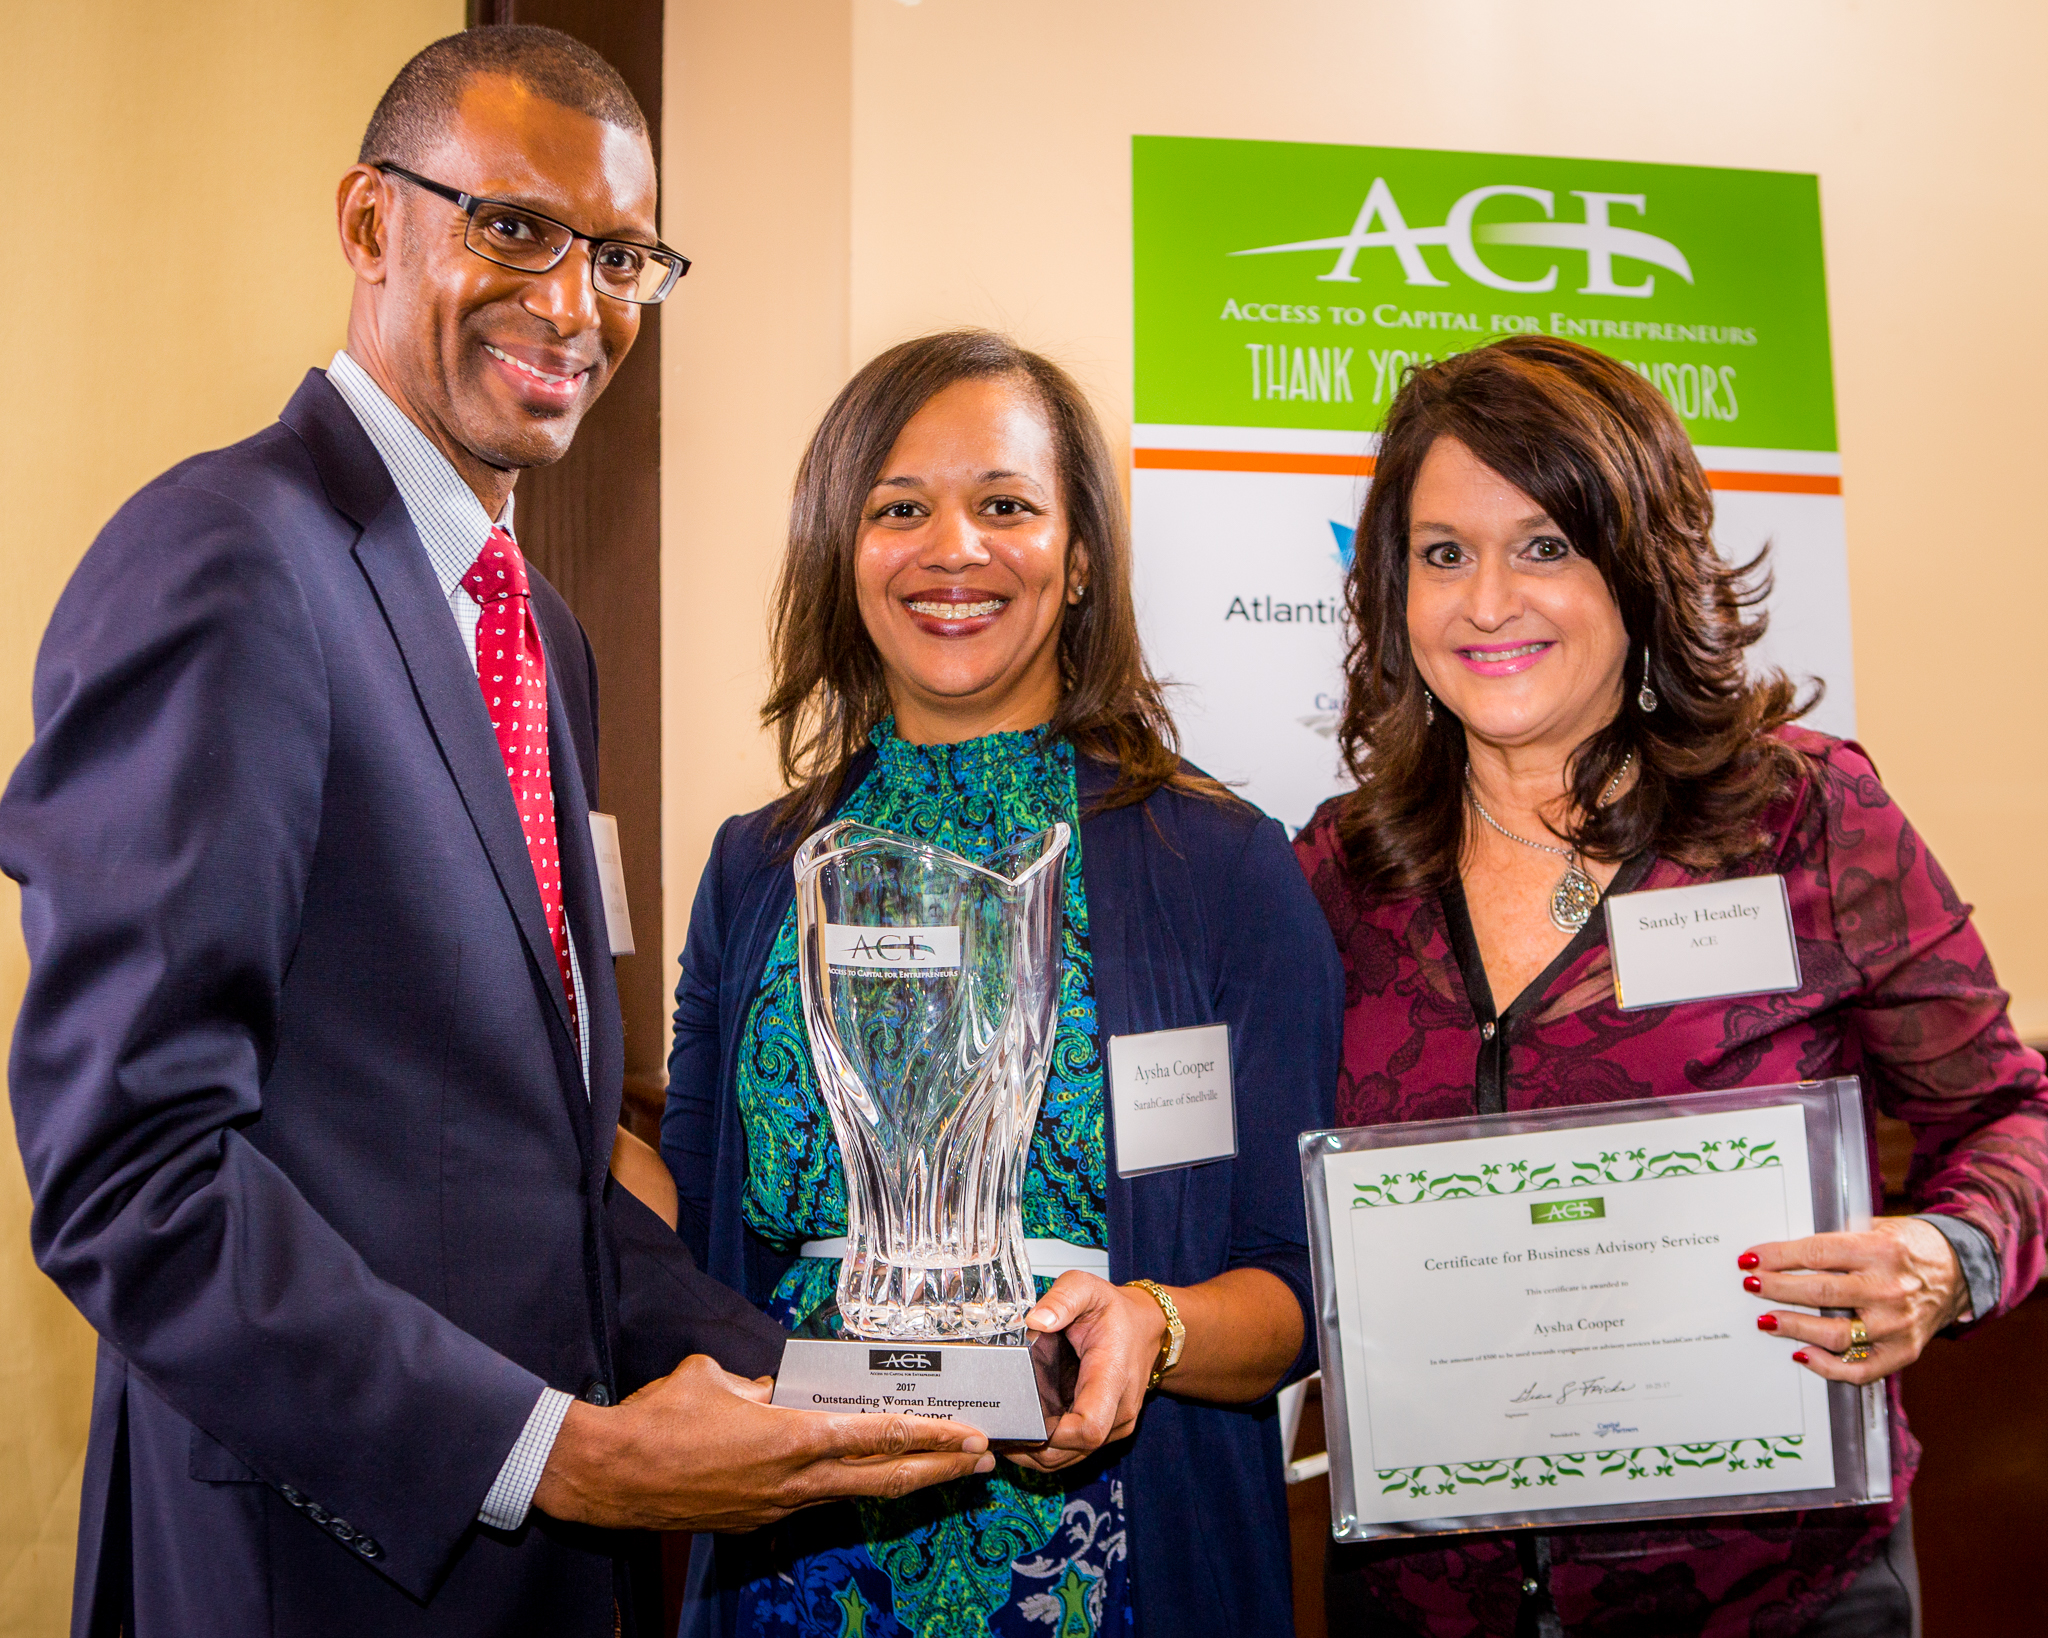 ACE Honors Entrepreneurs and Partners | Access to Capital for